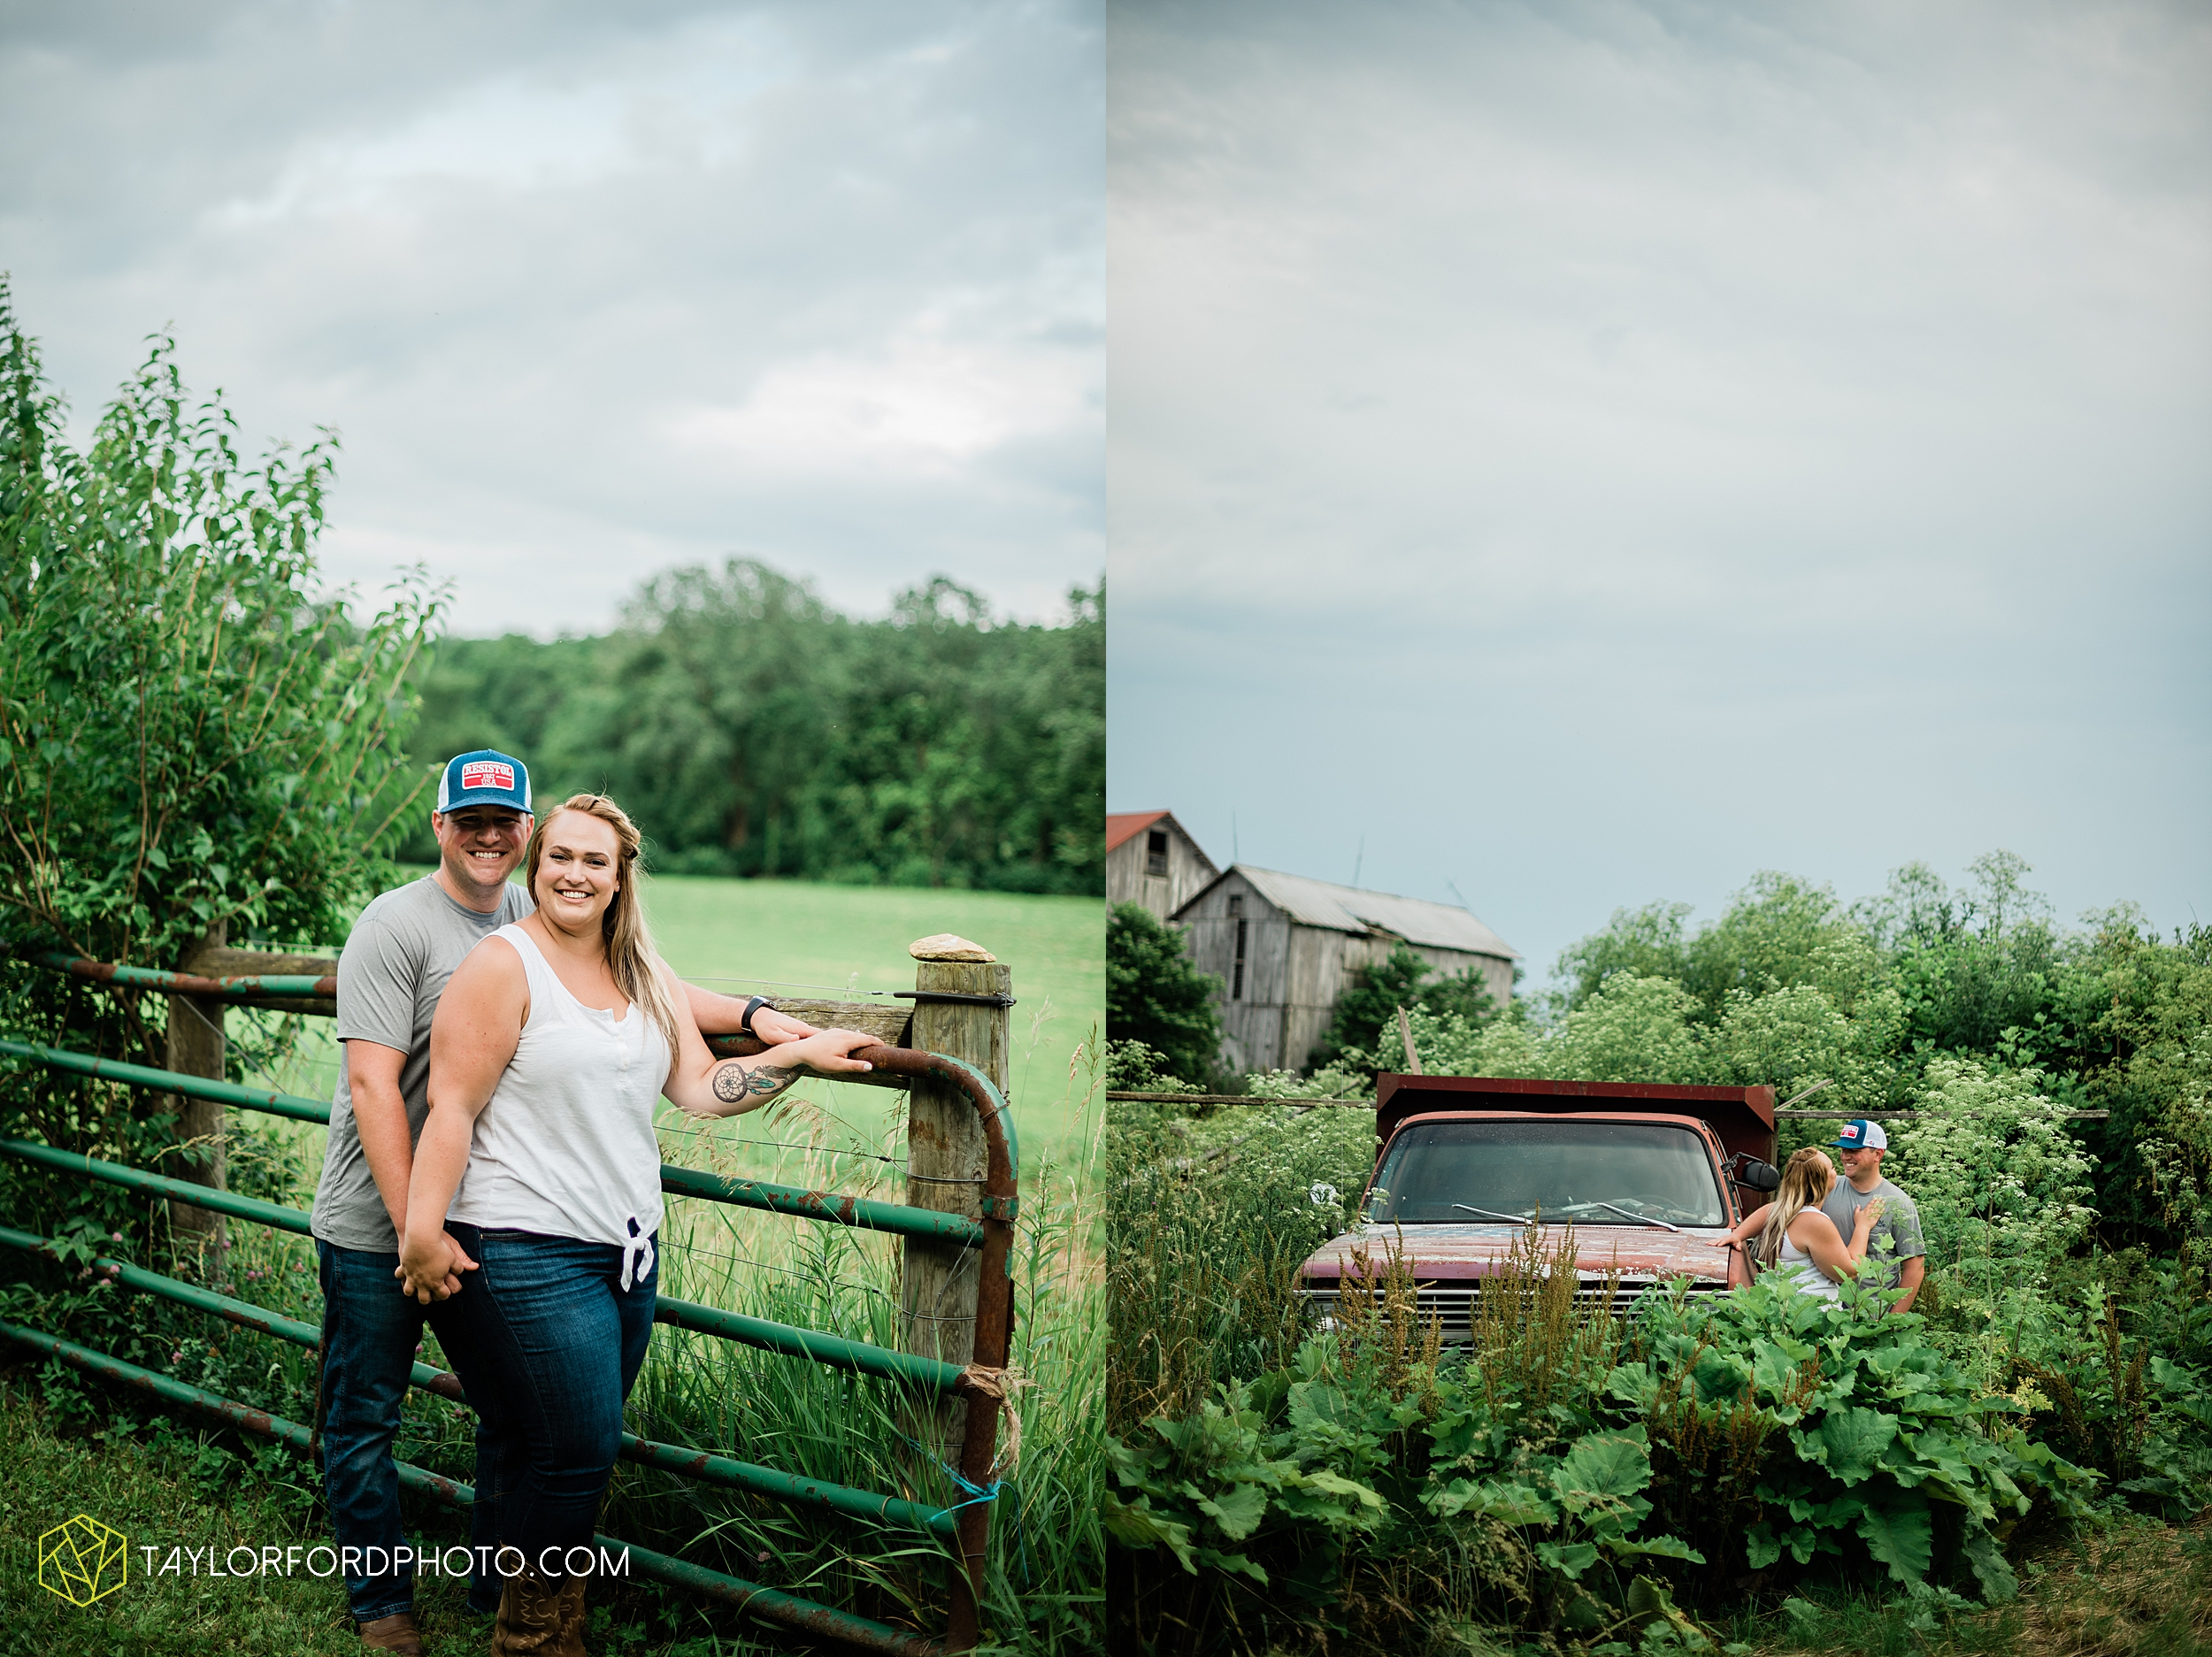 bellefontaine-ohio-engagement-farm-hills-law-enforcement-officer-photography-taylor-ford-hirschy-photographer_3517.jpg